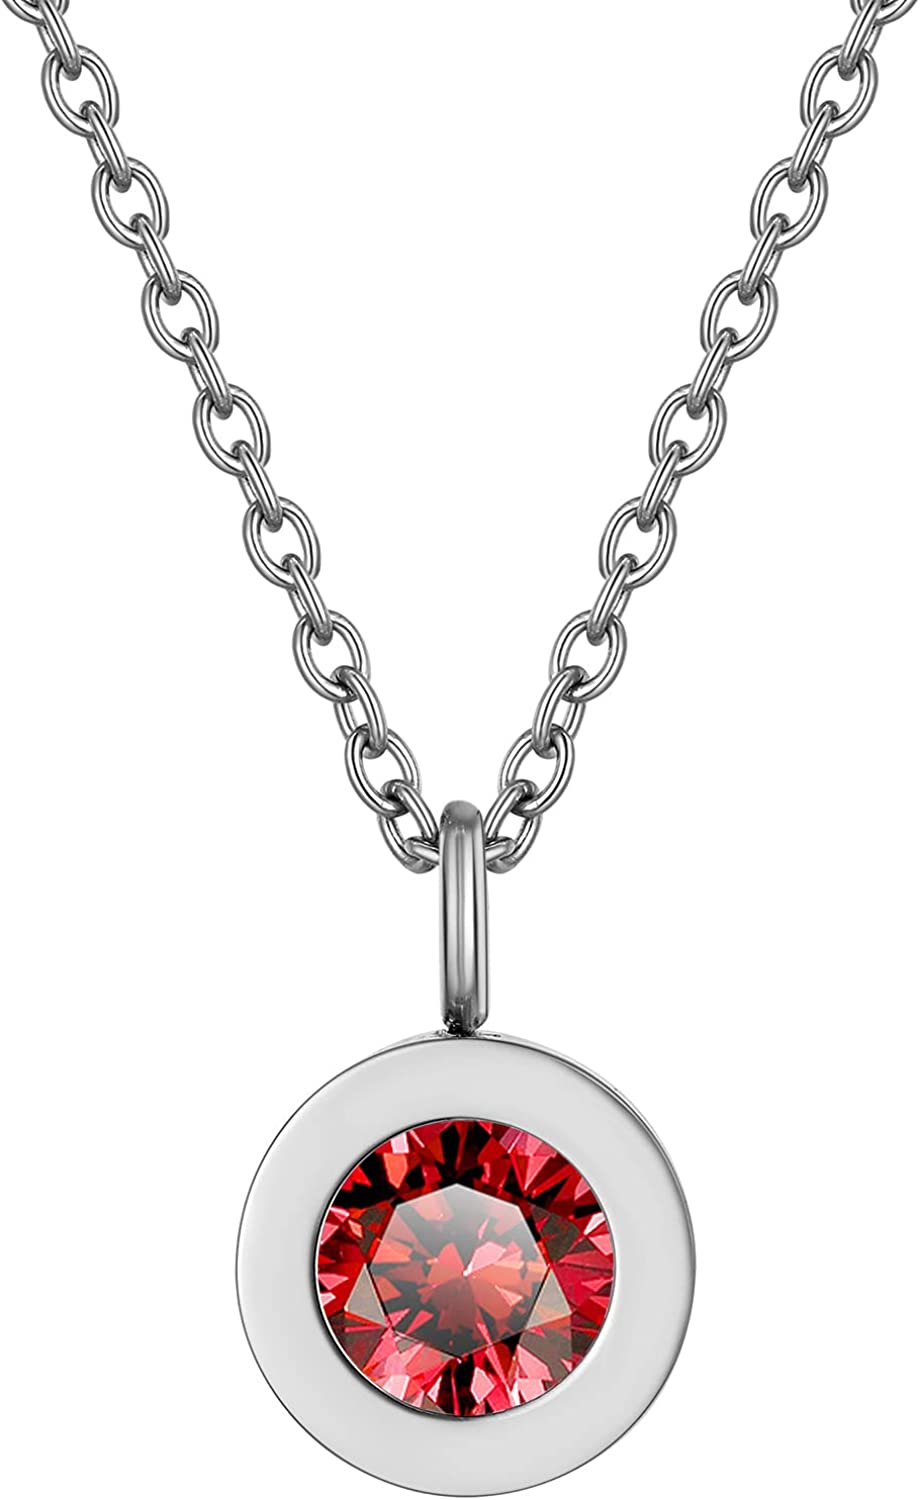 GOLDCHIC JEWELRY 12 Months Birthstone Necklace for Women, Stainless Steel 6mm Round CZ Solitaire Sparkly Bezel Pendant Necklace with 18